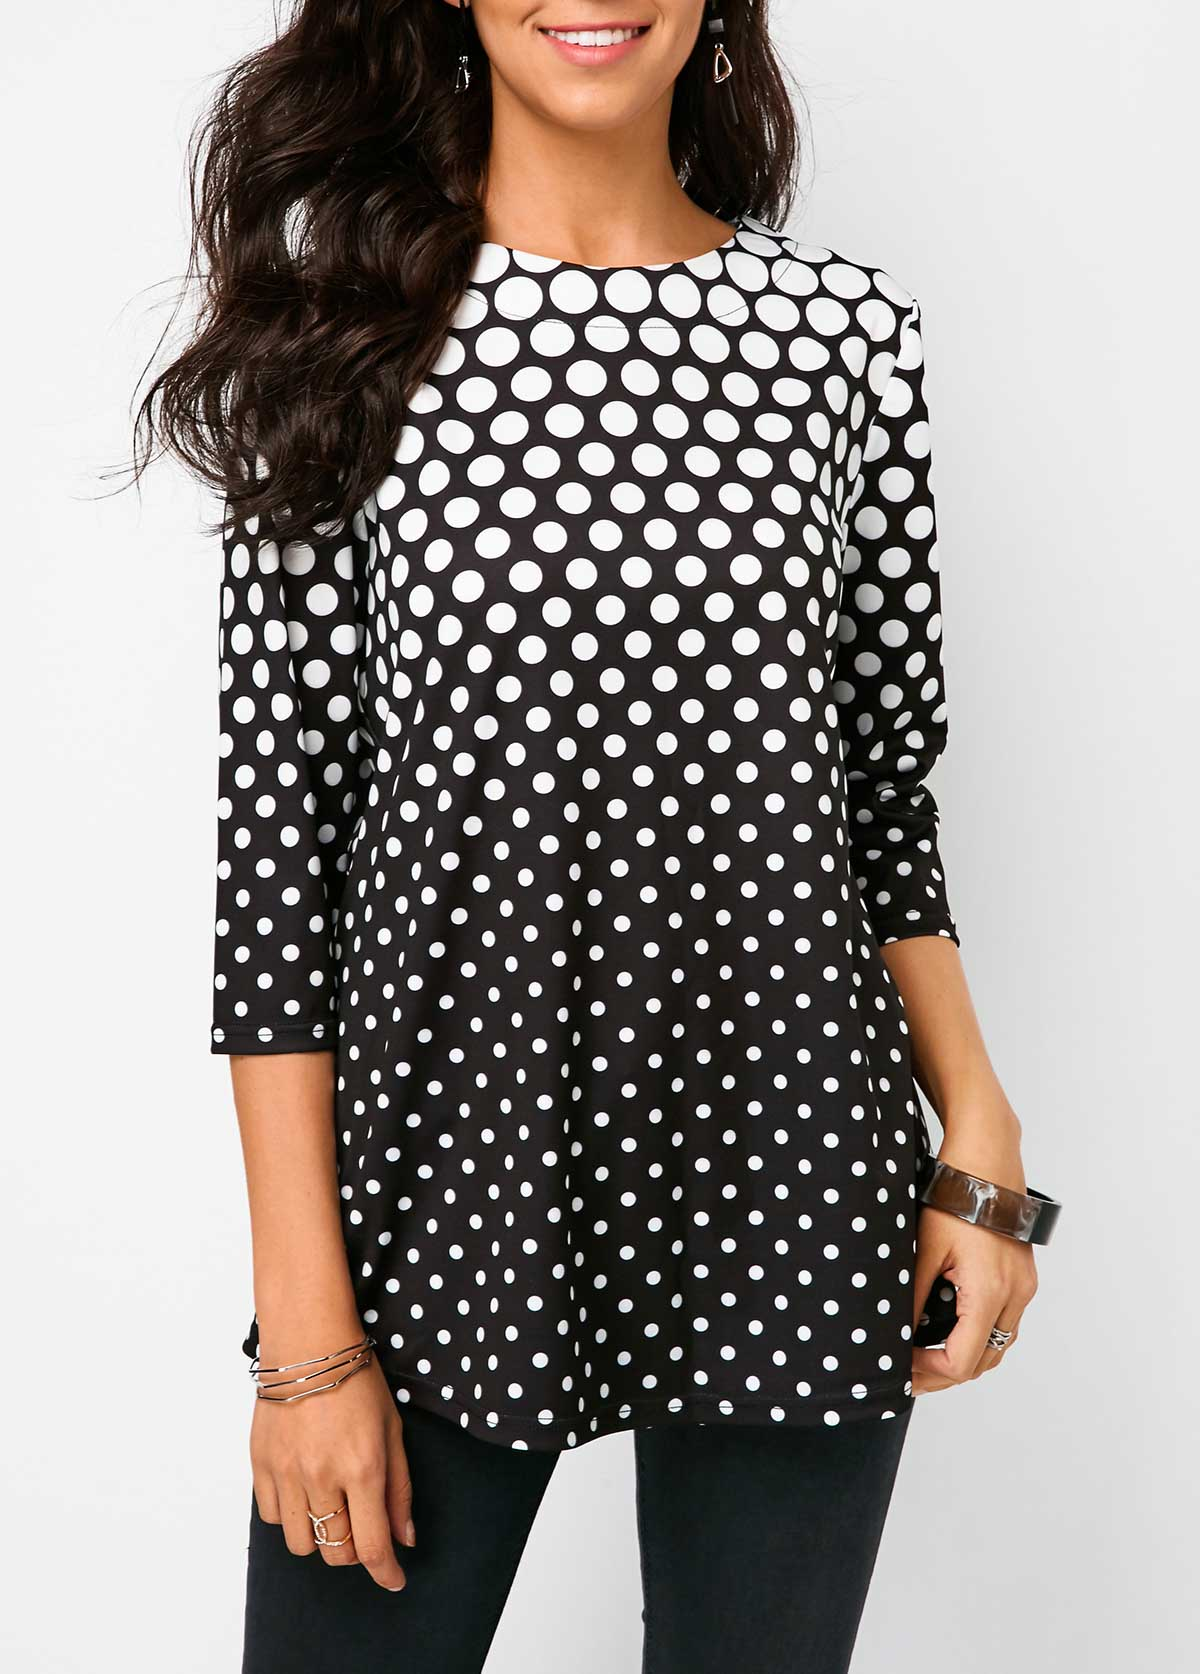 Polka Dot Print Black Three Quarter Sleeve Blouse